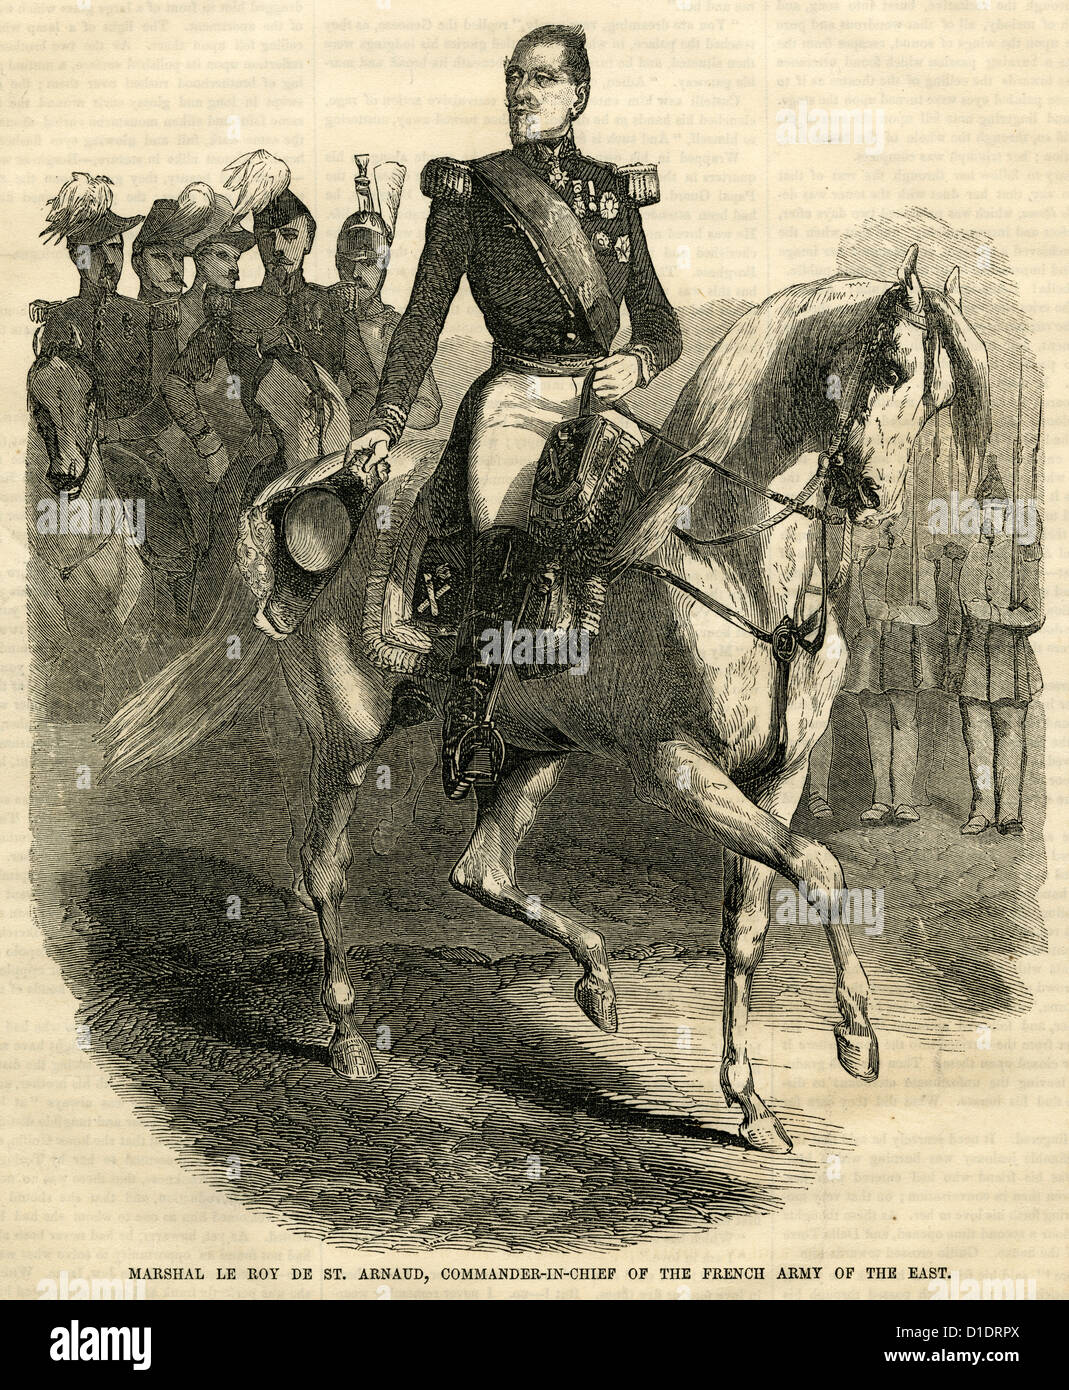 1854 engraving, Marshal Le Roy de St. Arnaud, Commander-in-Chief of the French Army in the East. - Stock Image